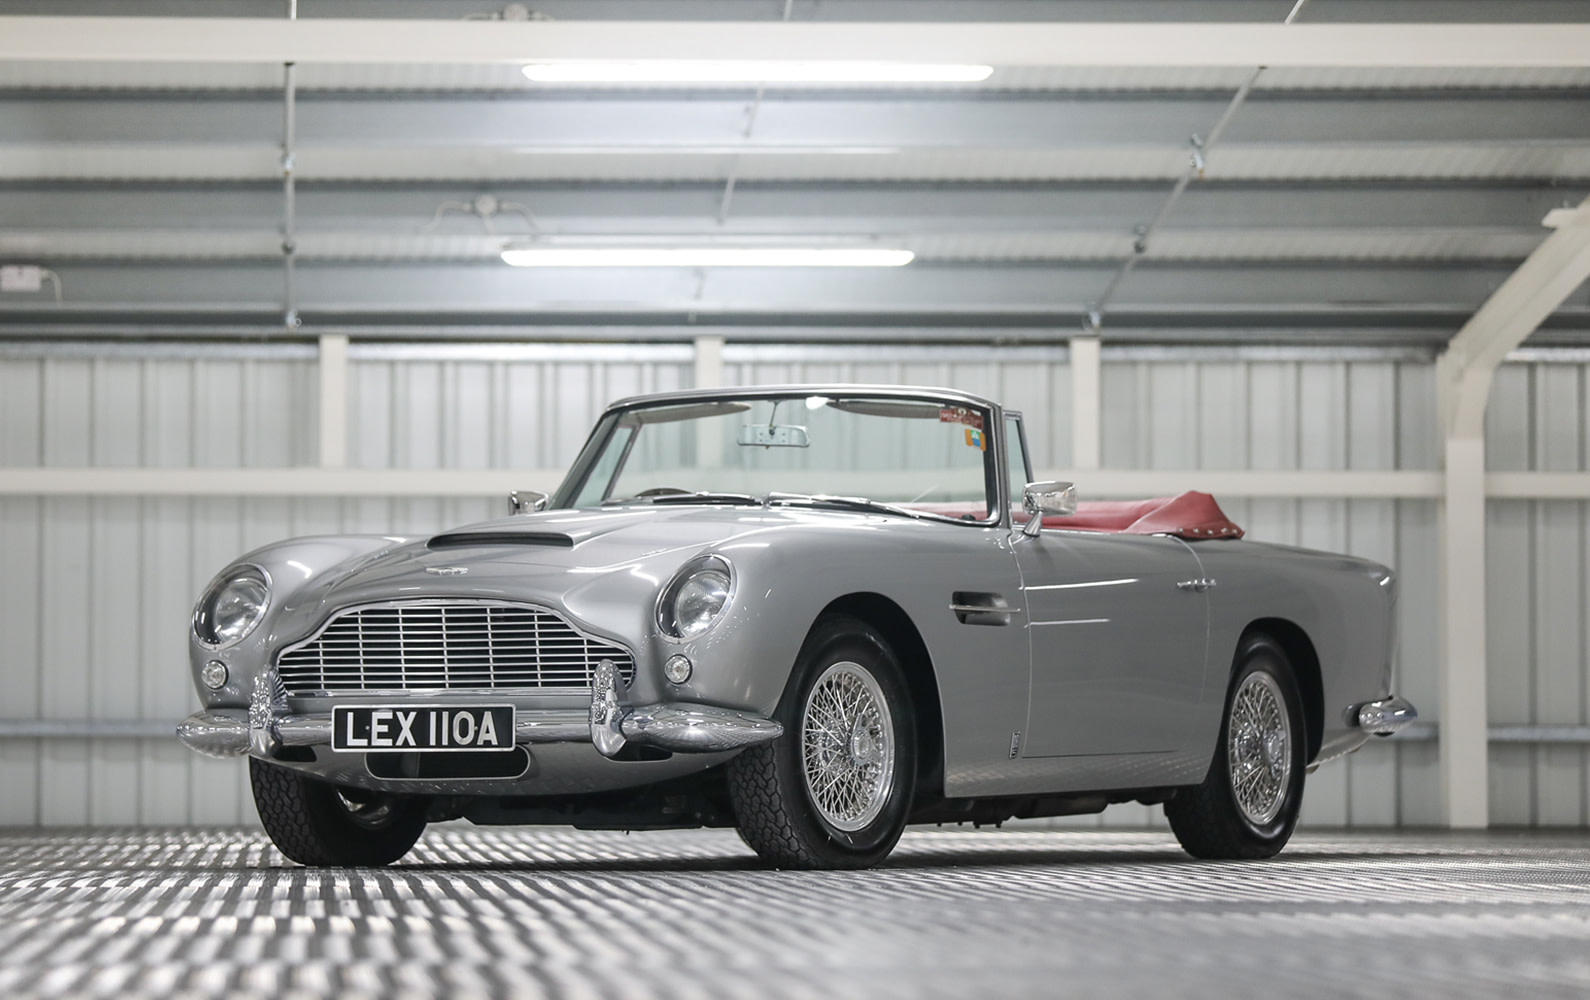 Prod/O21B - UK 2021/1963 Aston Martin DB5 Convertible/Hero/Aston_Martin_DB5_Convertible-02_km56gu